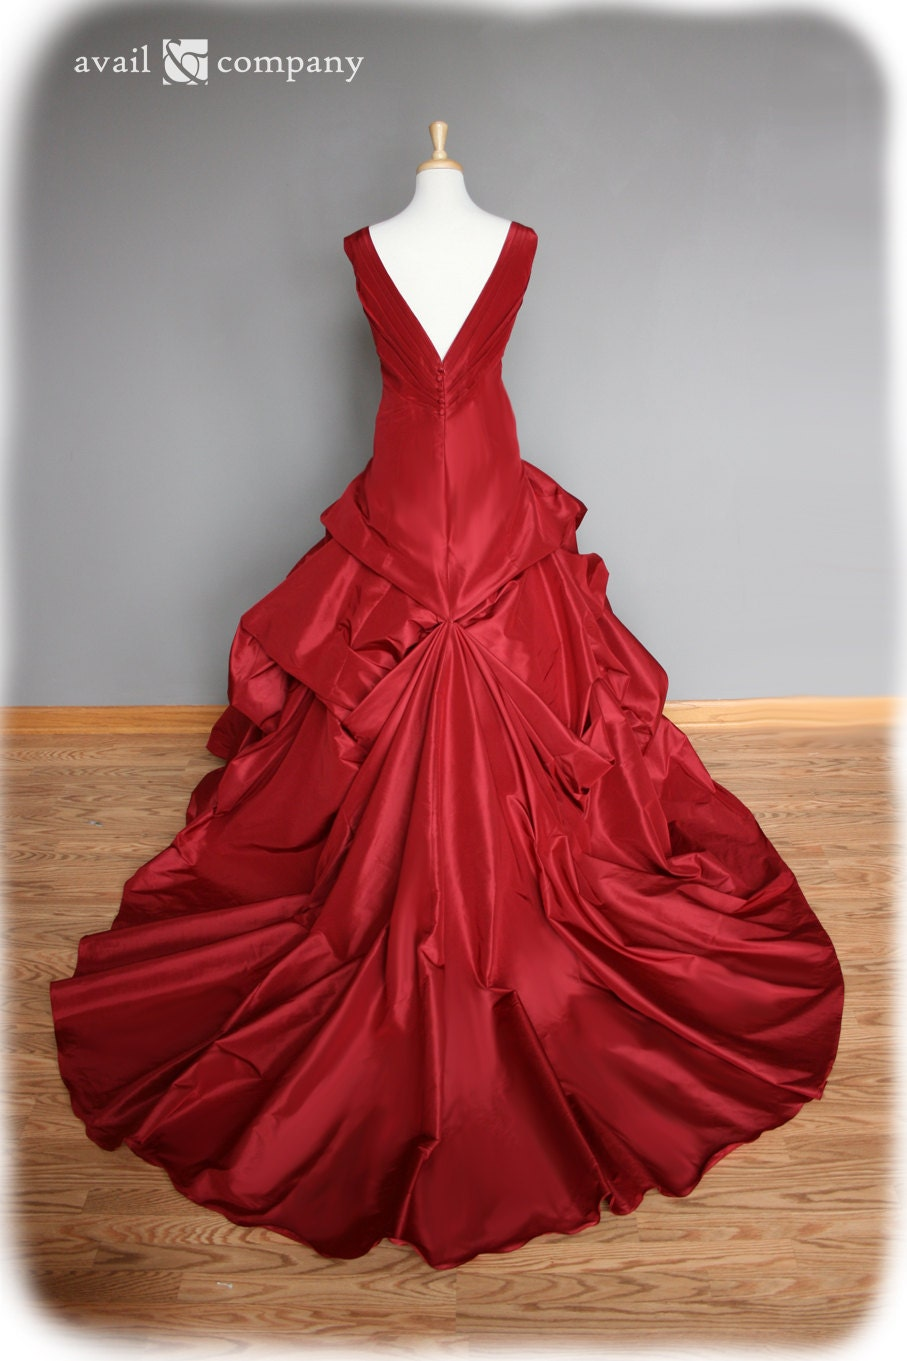 red wedding dress ball gown silk taffeta custom made to by